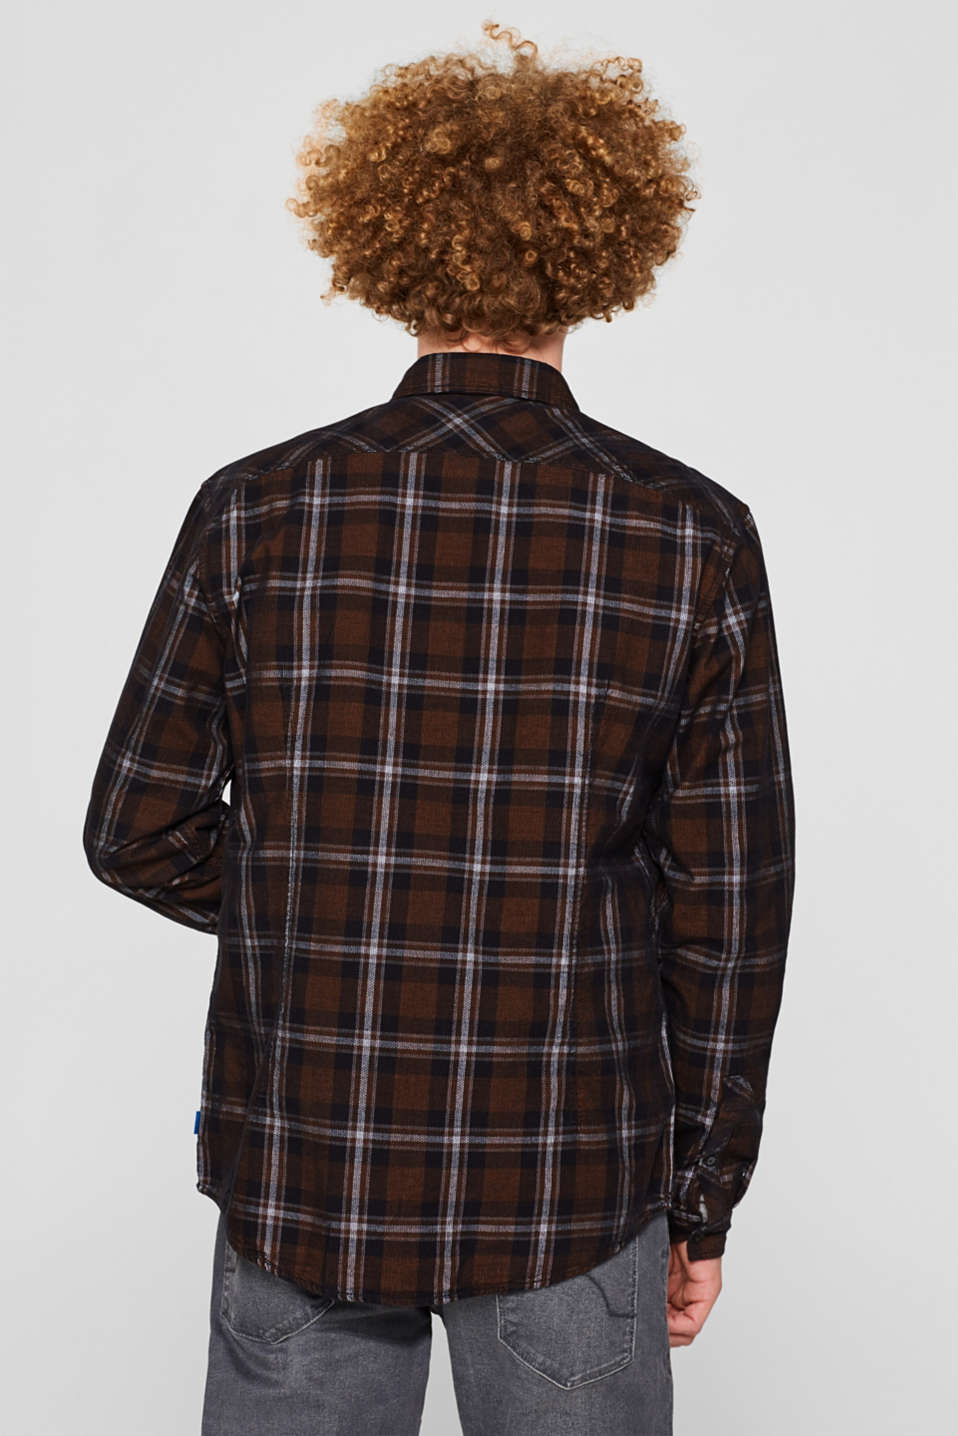 Corduroy top with a check pattern, 100% cotton, GREY, detail image number 3